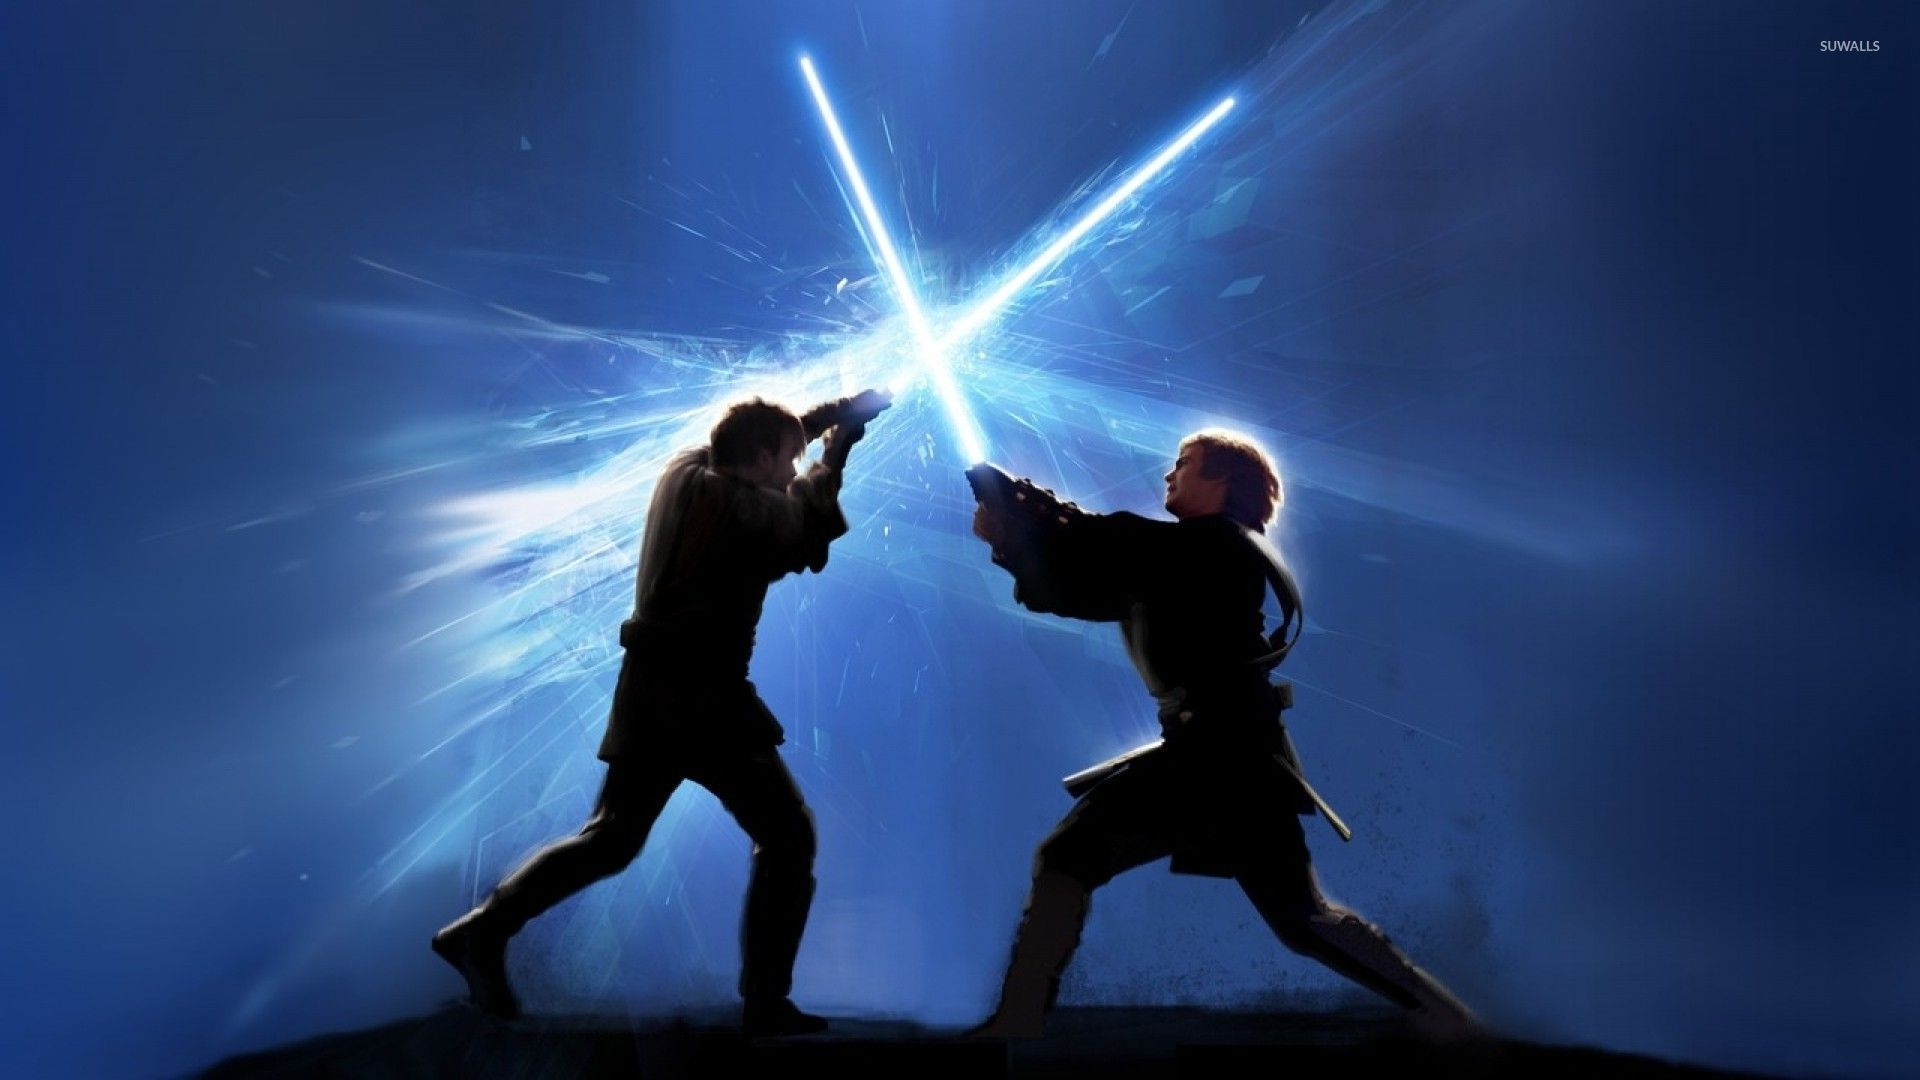 Jedi Fight Wallpaper